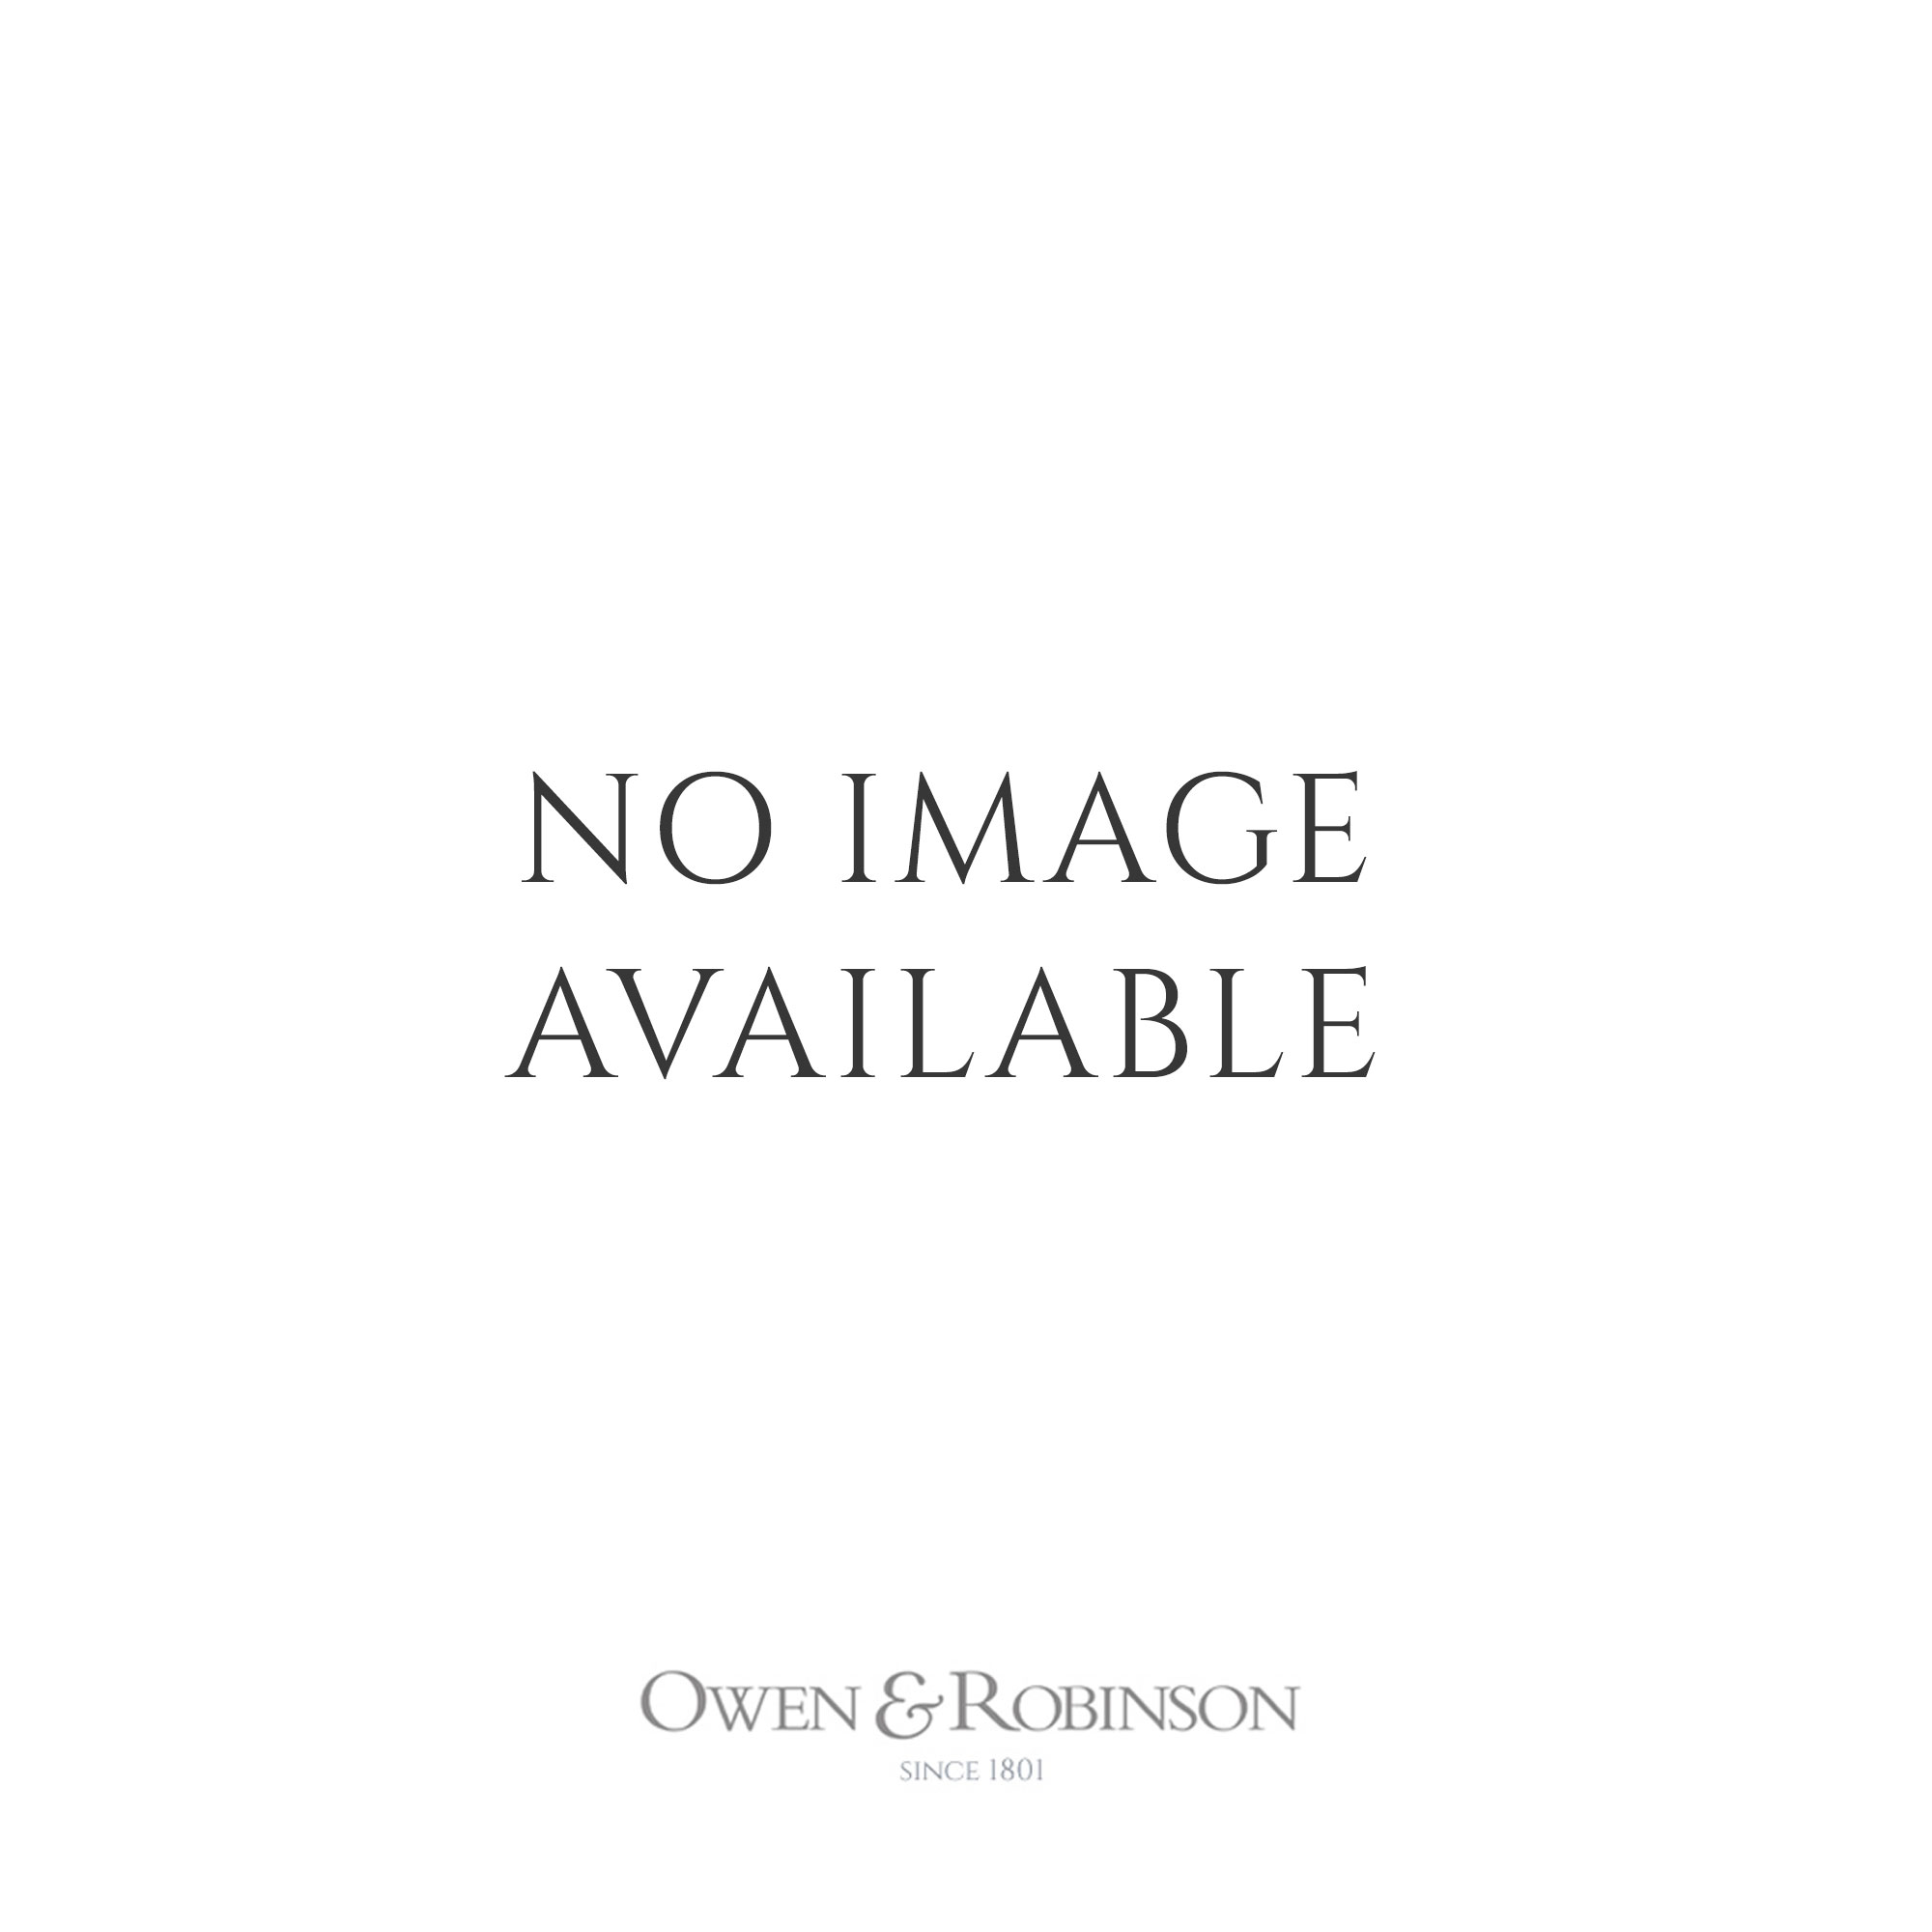 Georg Jensen 2016 Christmas Collectibles Gold Plated Wreath Ornaments, 2 Piece Set